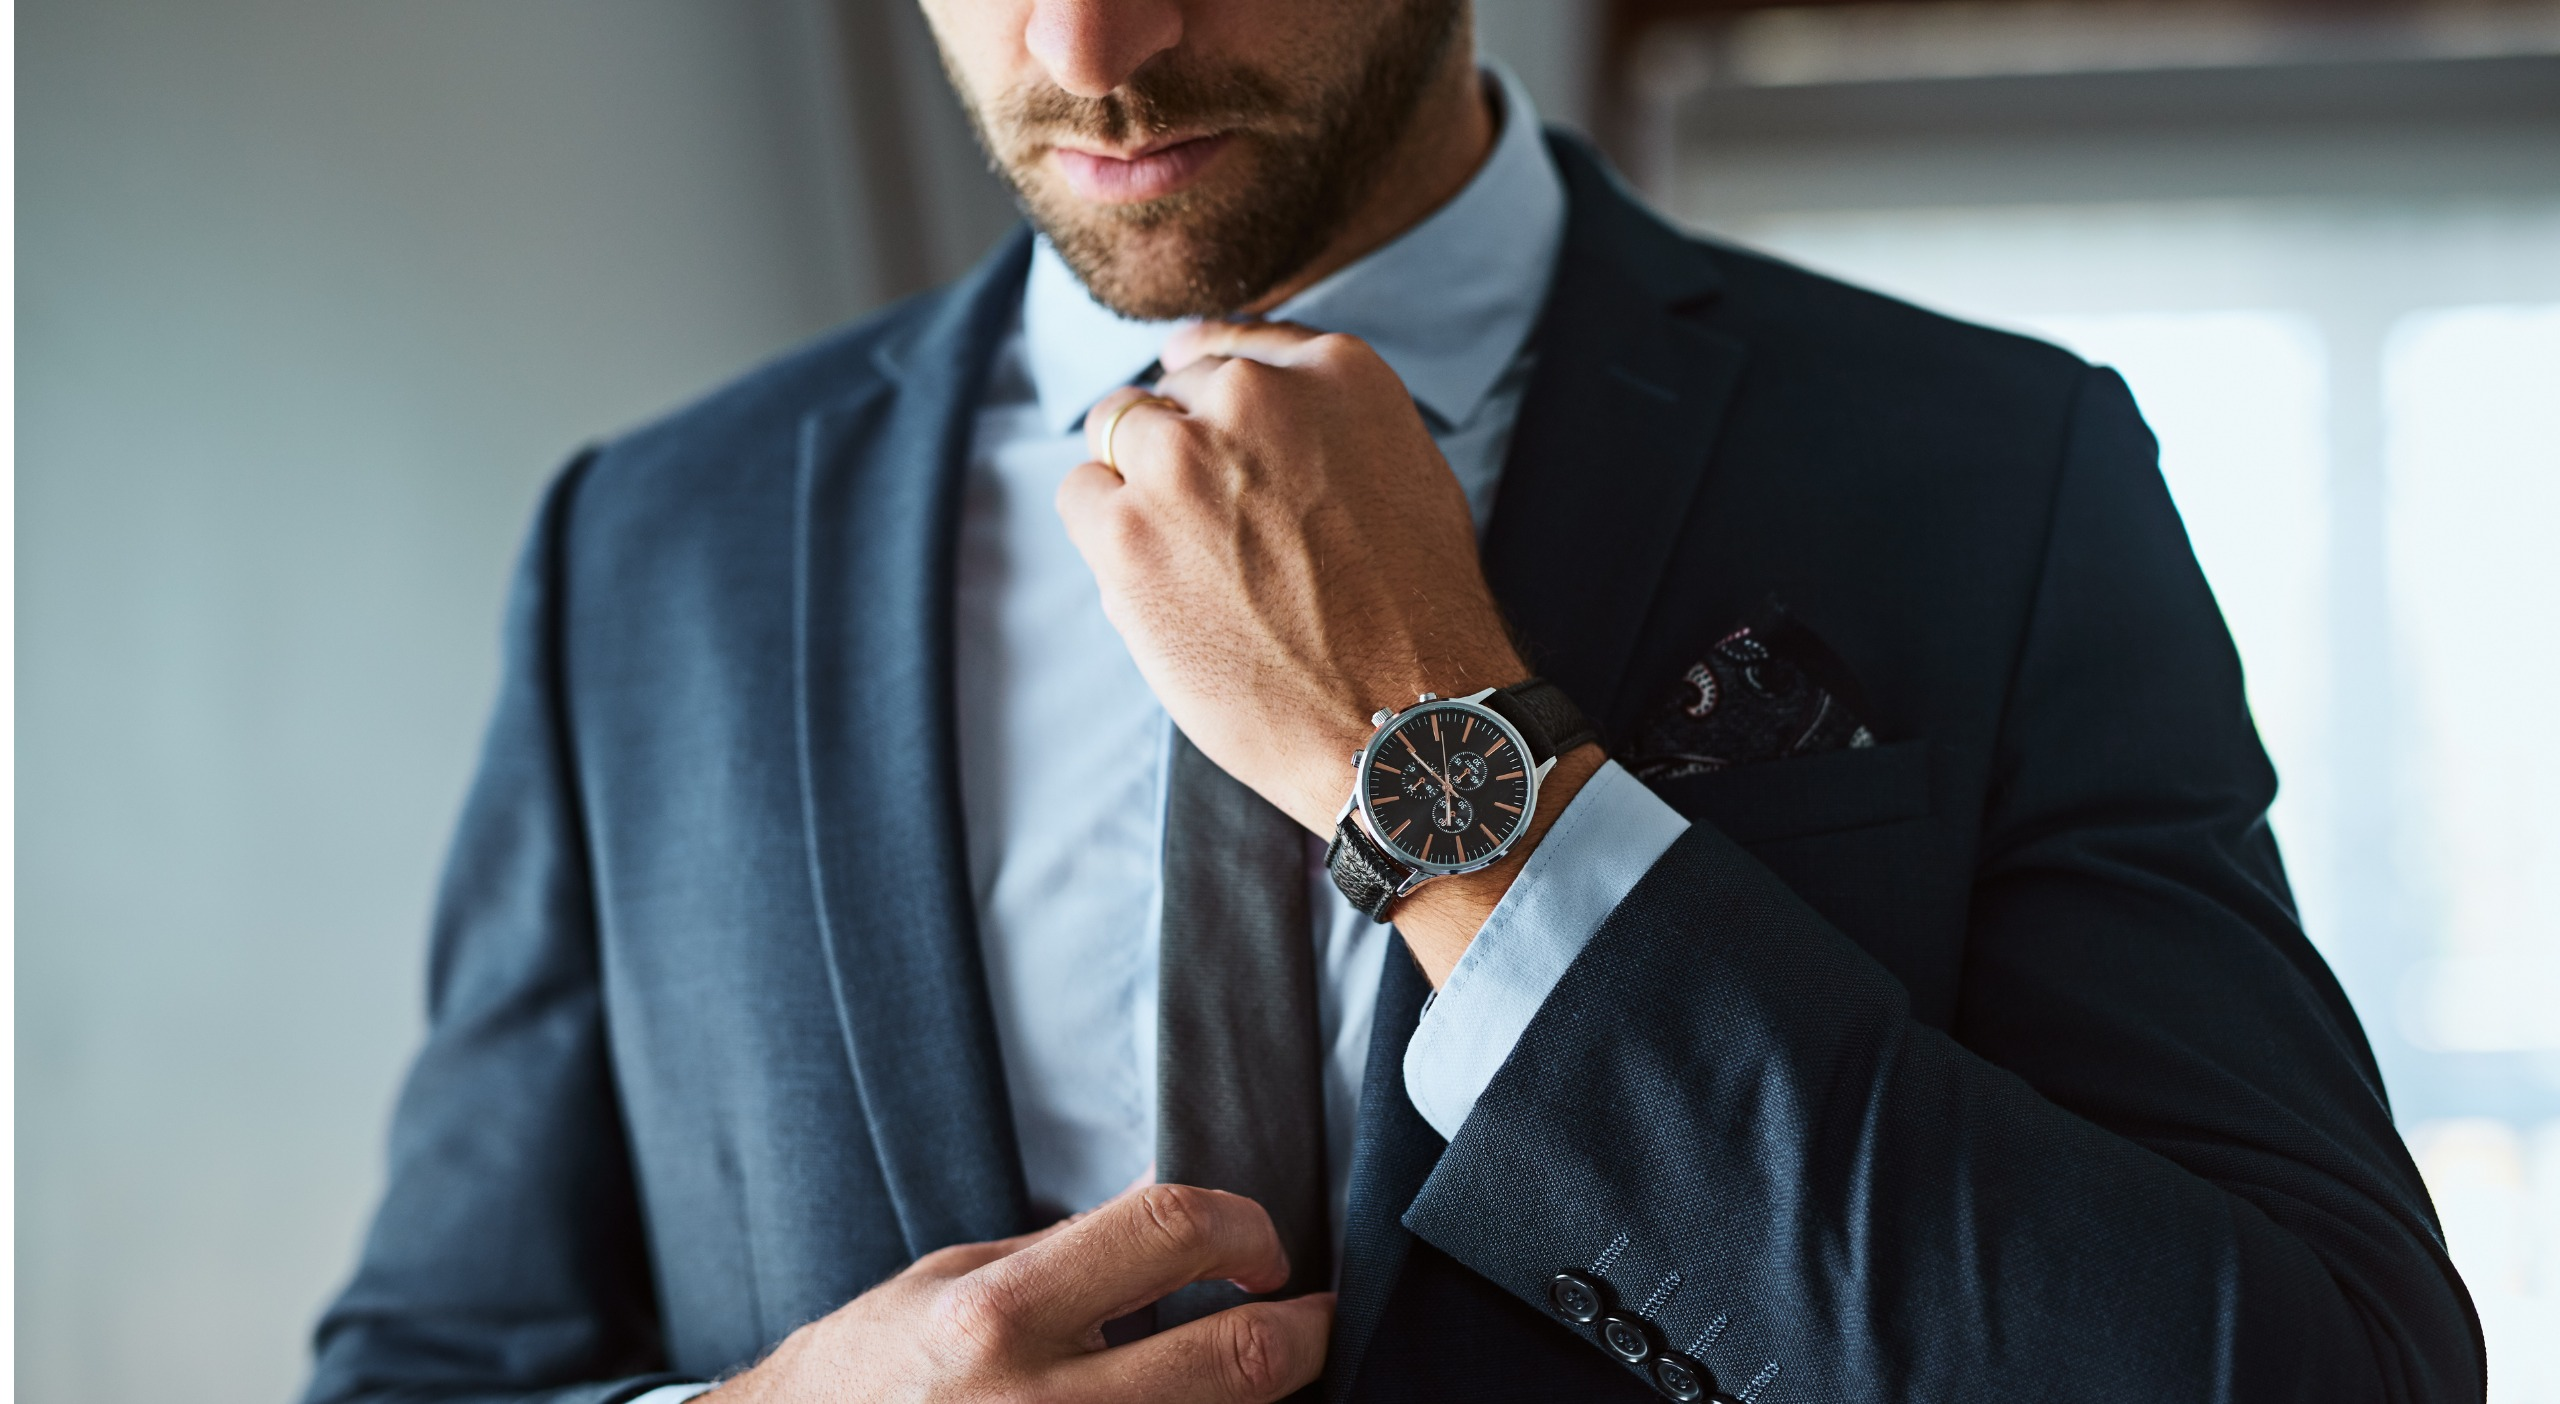 What Hand Do Men Wear Watches On: Left or Right?